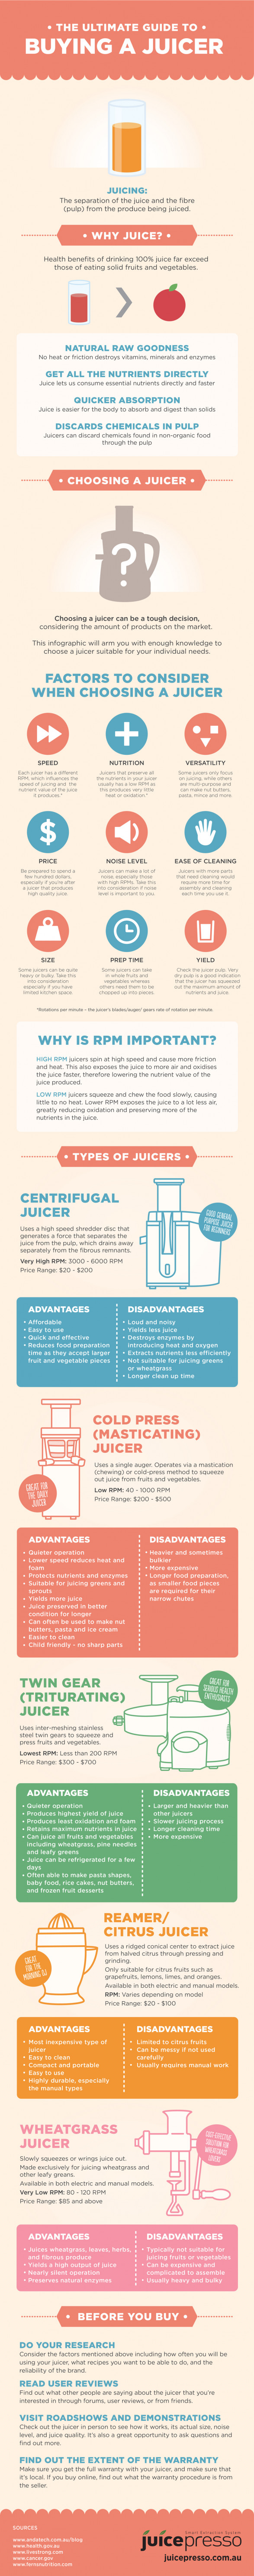 The Ultimate Guide to Buying a Juicer